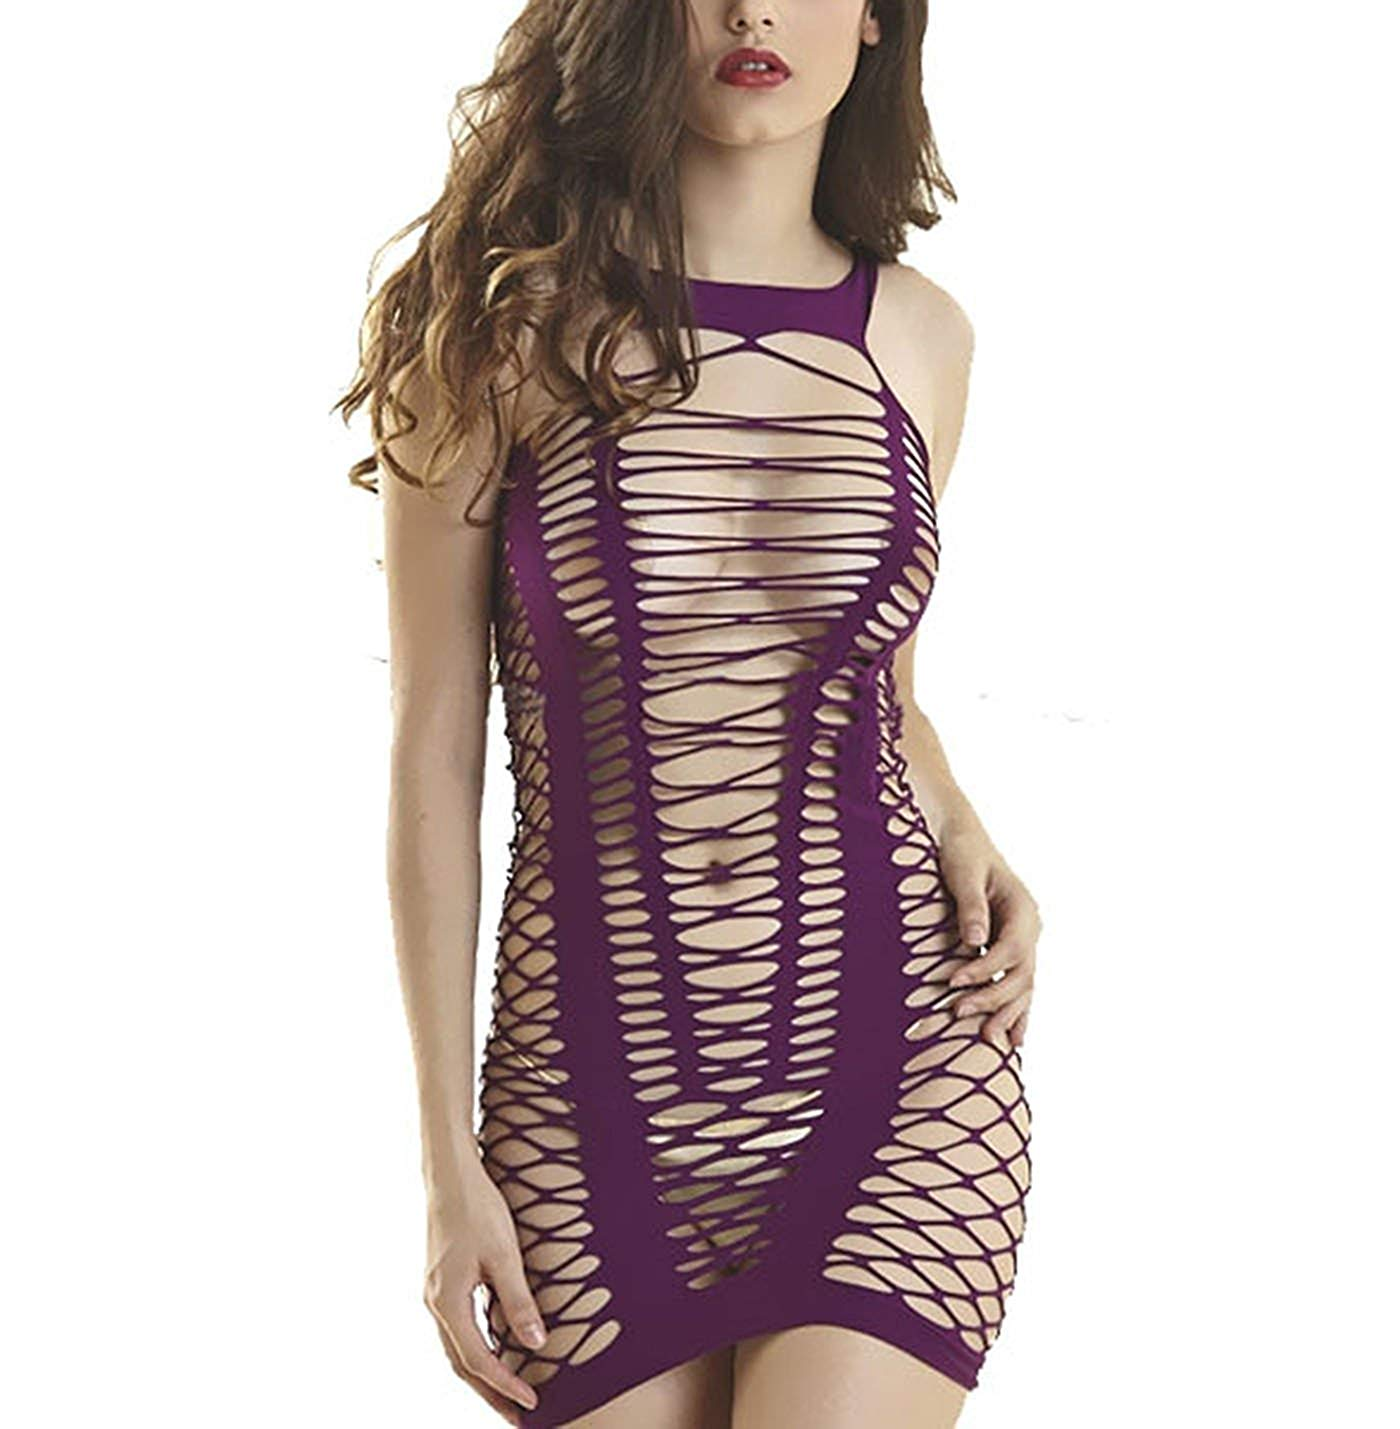 5193777154 Get Quotations · Davidsly Women Mesh Chemise Lingerie stretchy fabric  Dress